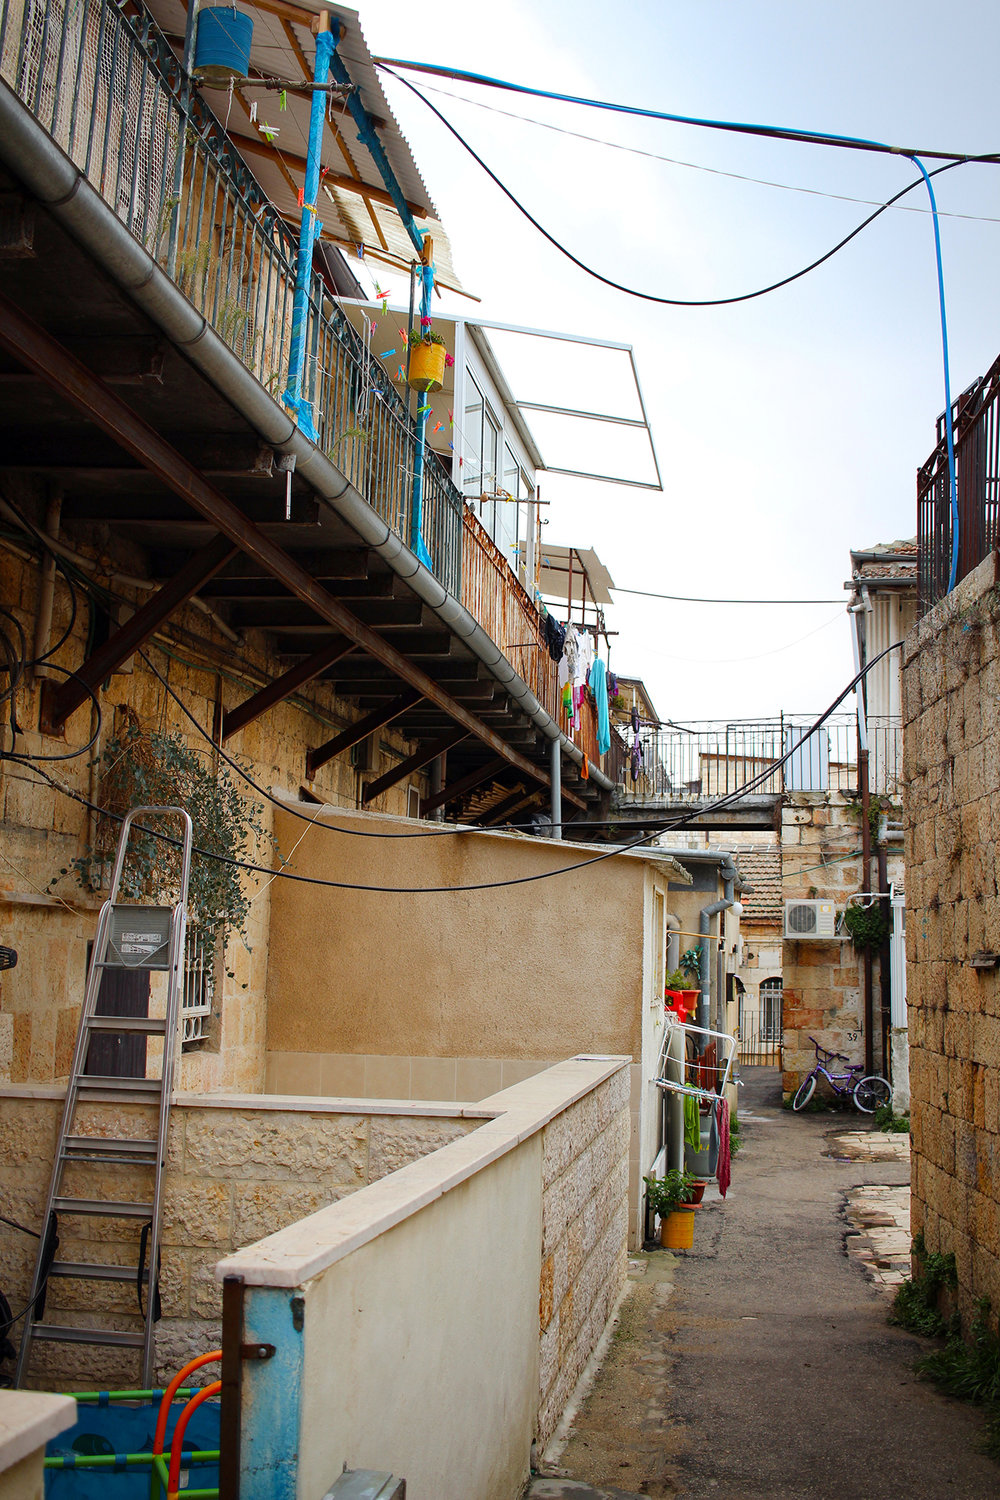 Yemin Moshe, Old Jerusalem, Israel. Travel photography by Geena Matuson @geenamatuson #thegirlmirage.